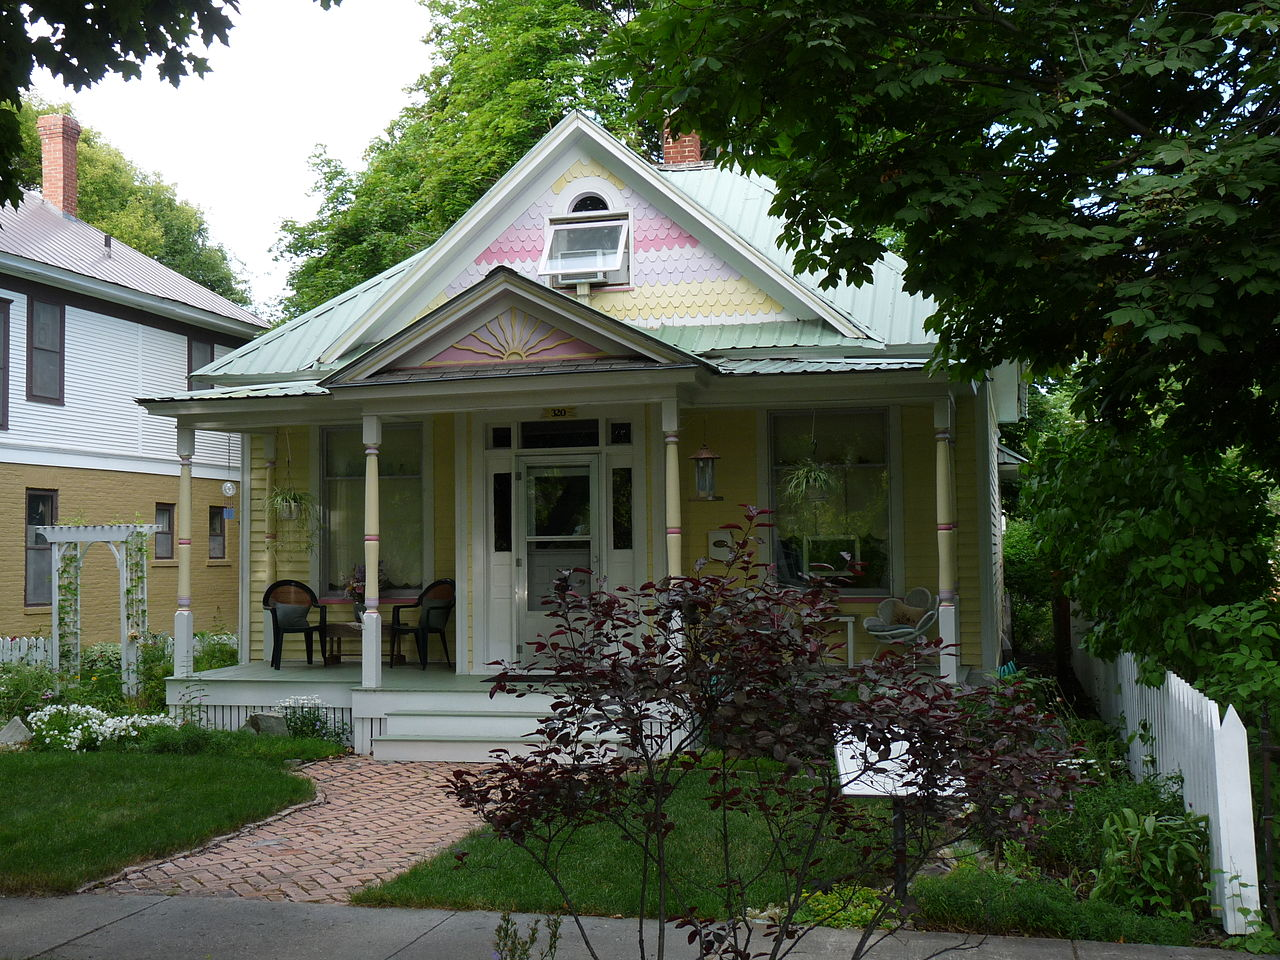 The Ferguson House was built around 1897 and is a fine example of Queen Anne architecture.